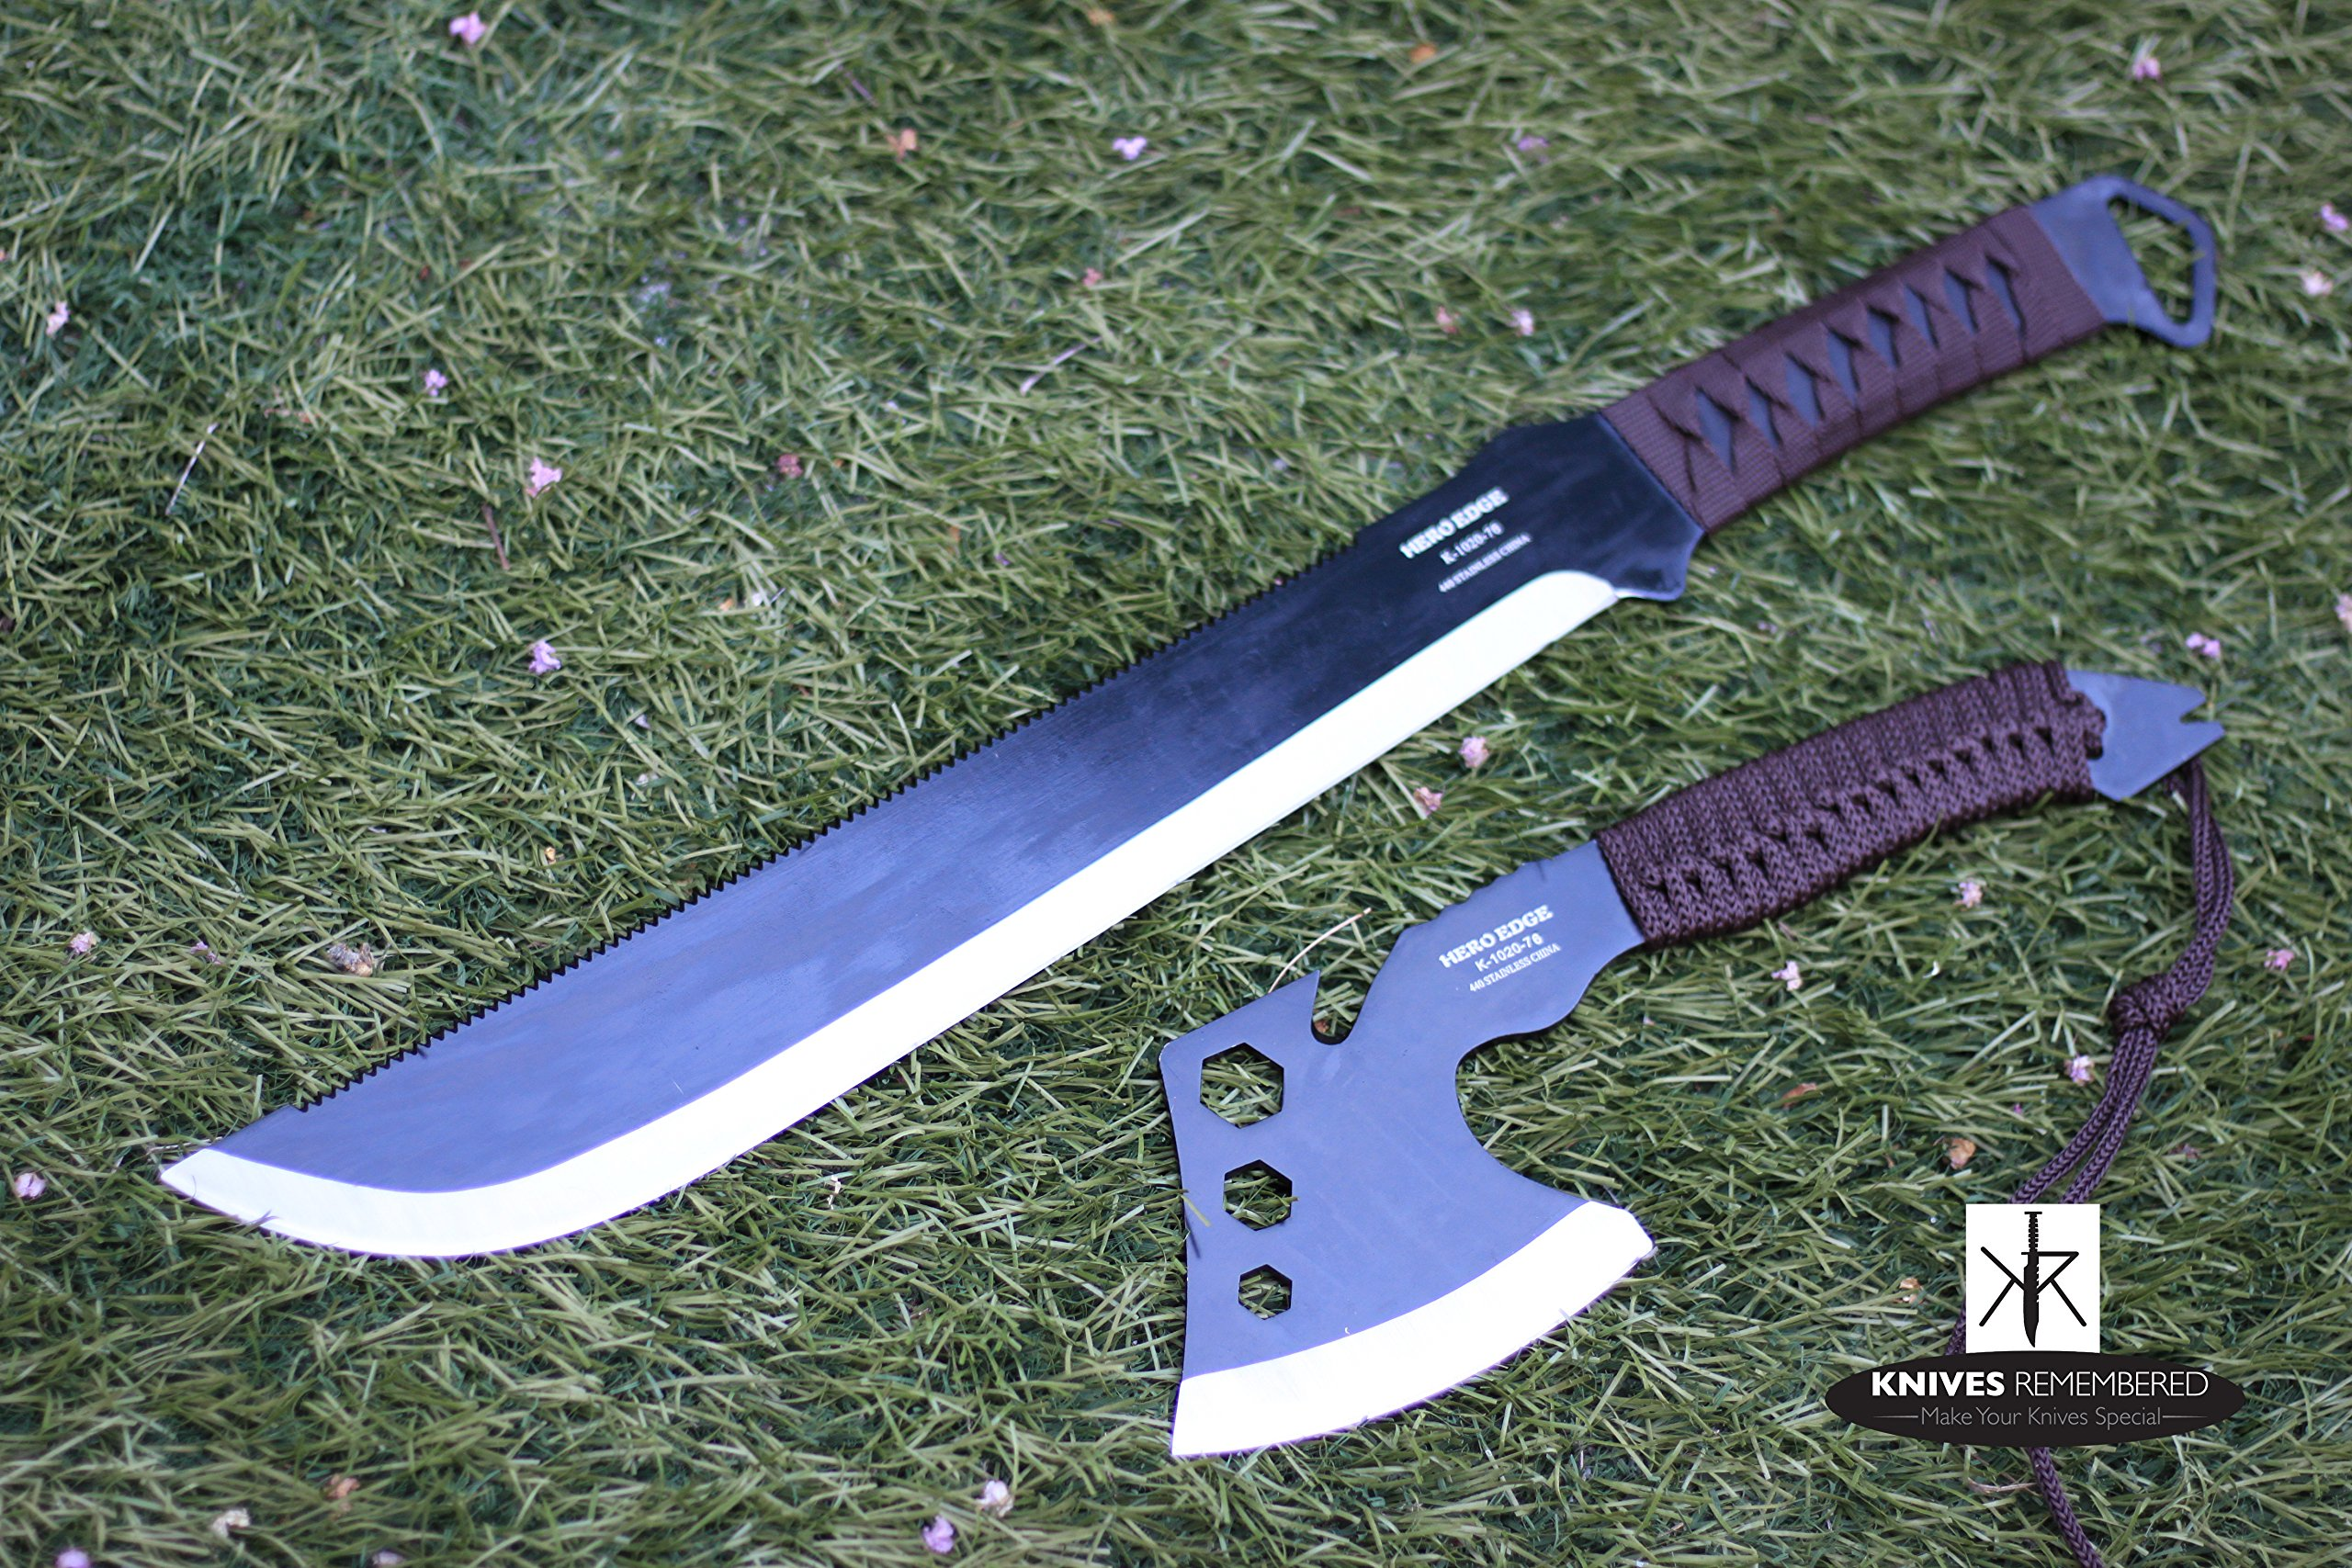 Outdoor Camping & Hunting Machete Knife and Thrower Axe w/ Back Carry Nylon Case by HERO EDGE